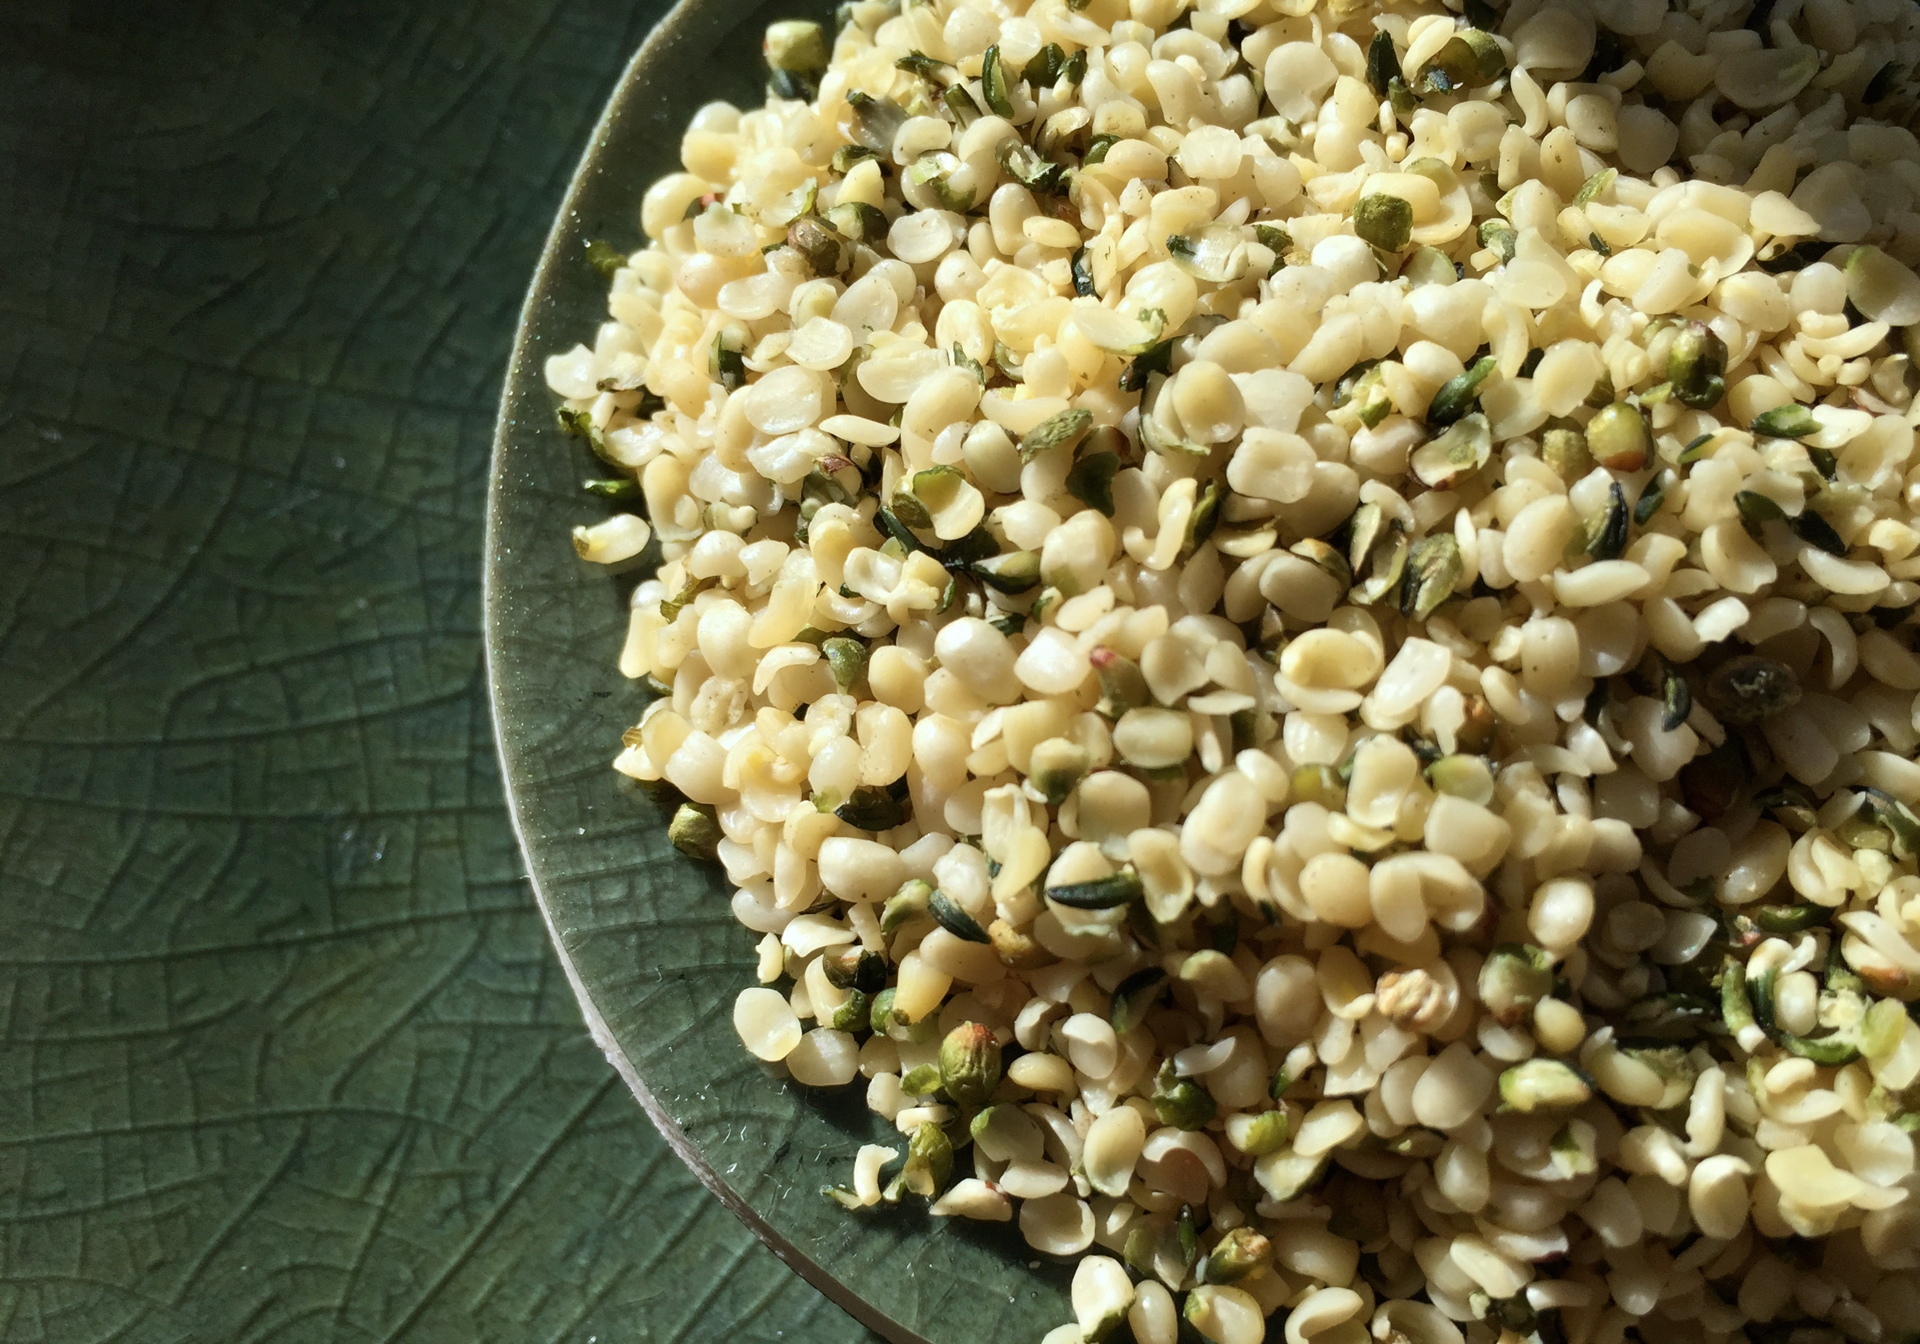 Hemp Seeds. Photo: Lisa Landers